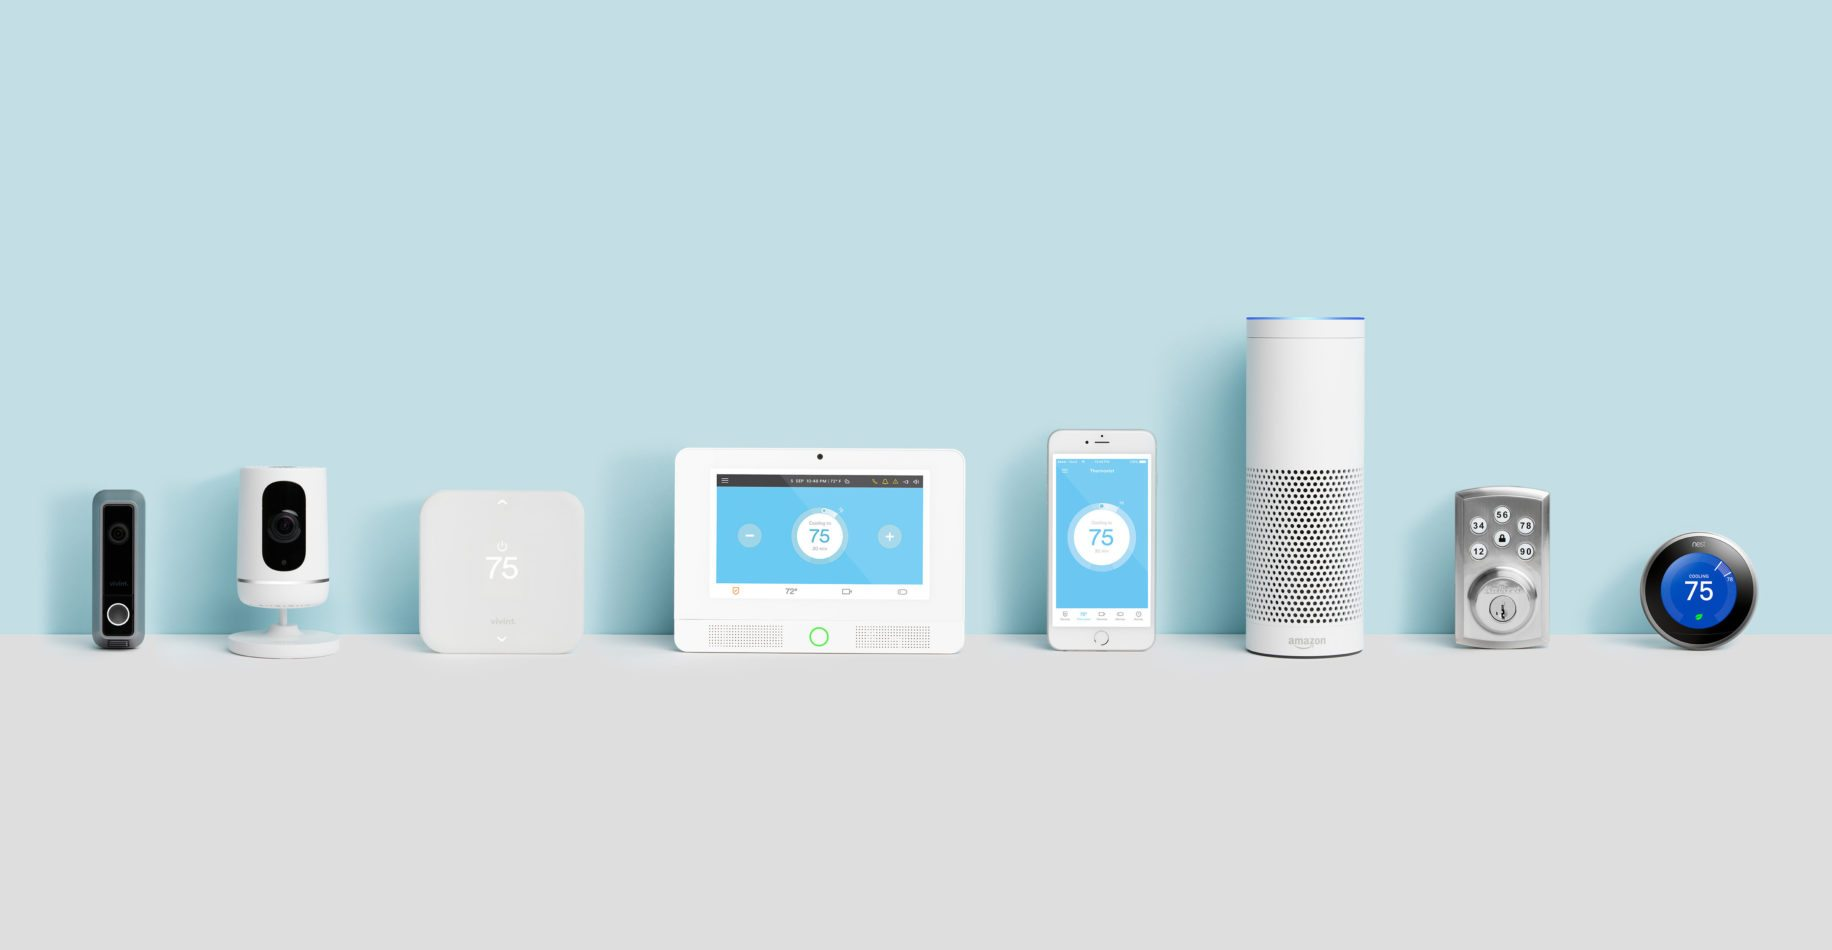 Vivint Security Integrates Snugly With Your Existing Smart Home Solutions